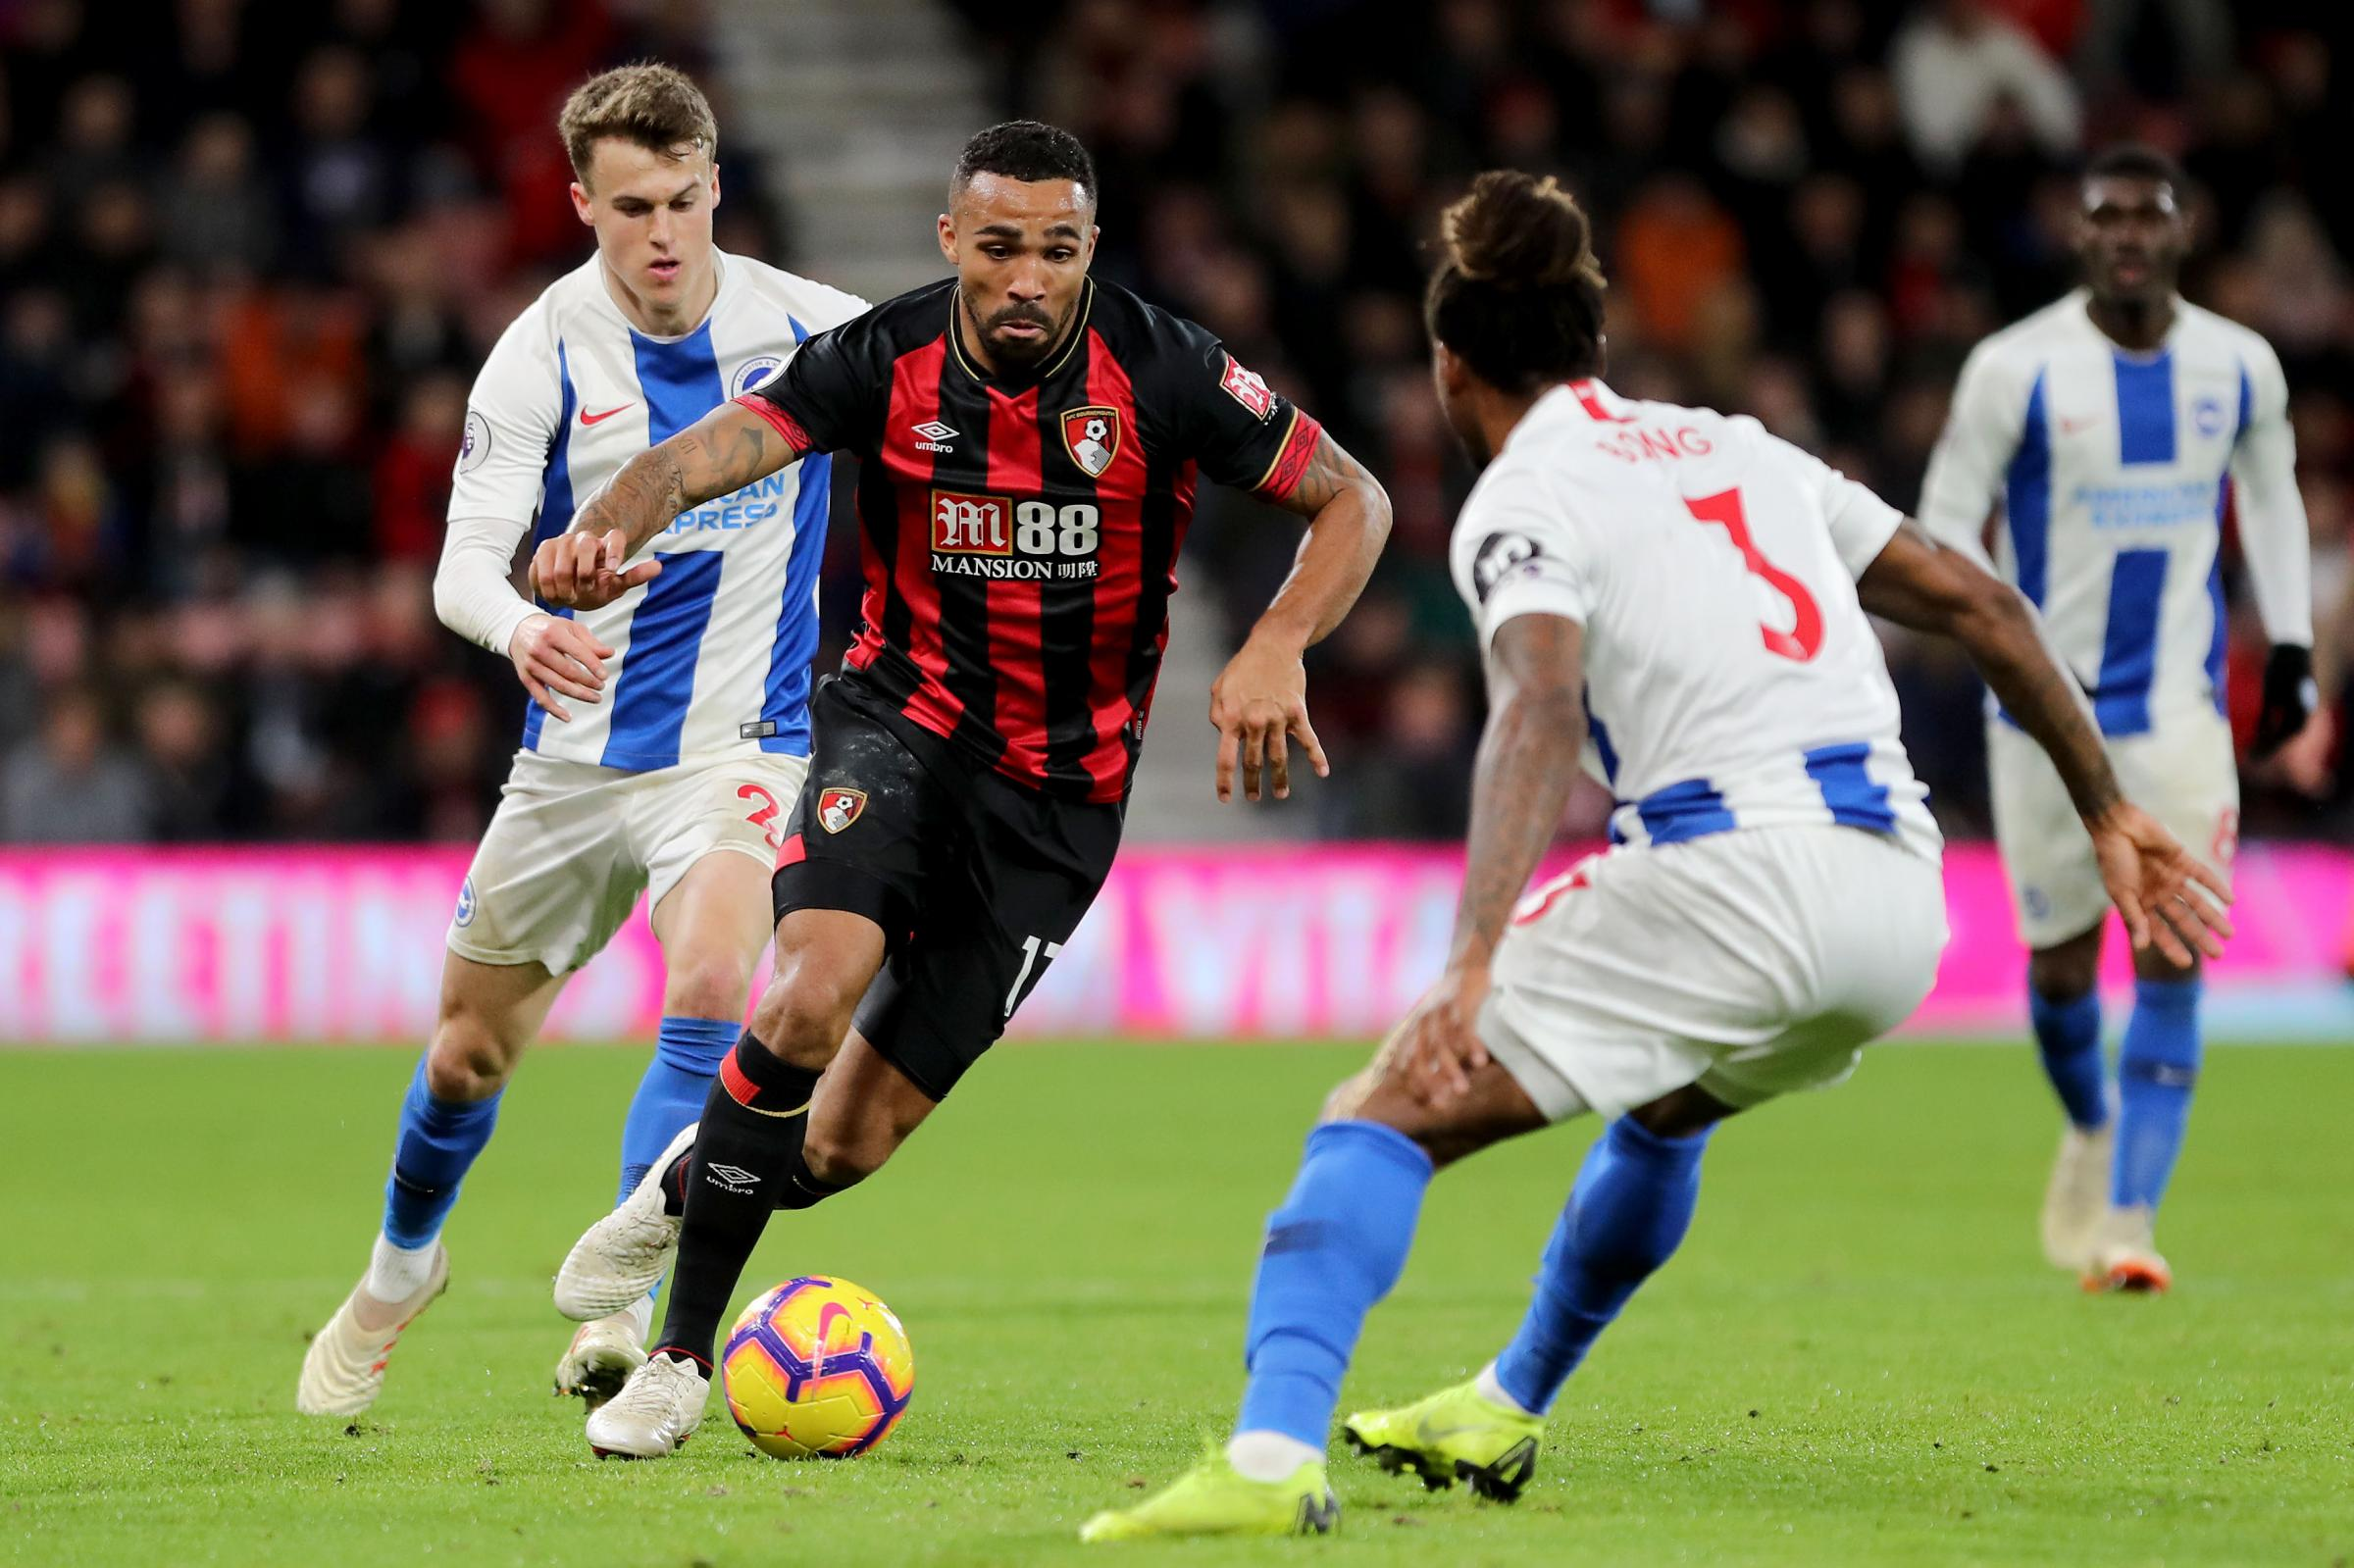 'We have had no interest in any of our players, everything has just been speculation' – Howe determined to keep star Wilson